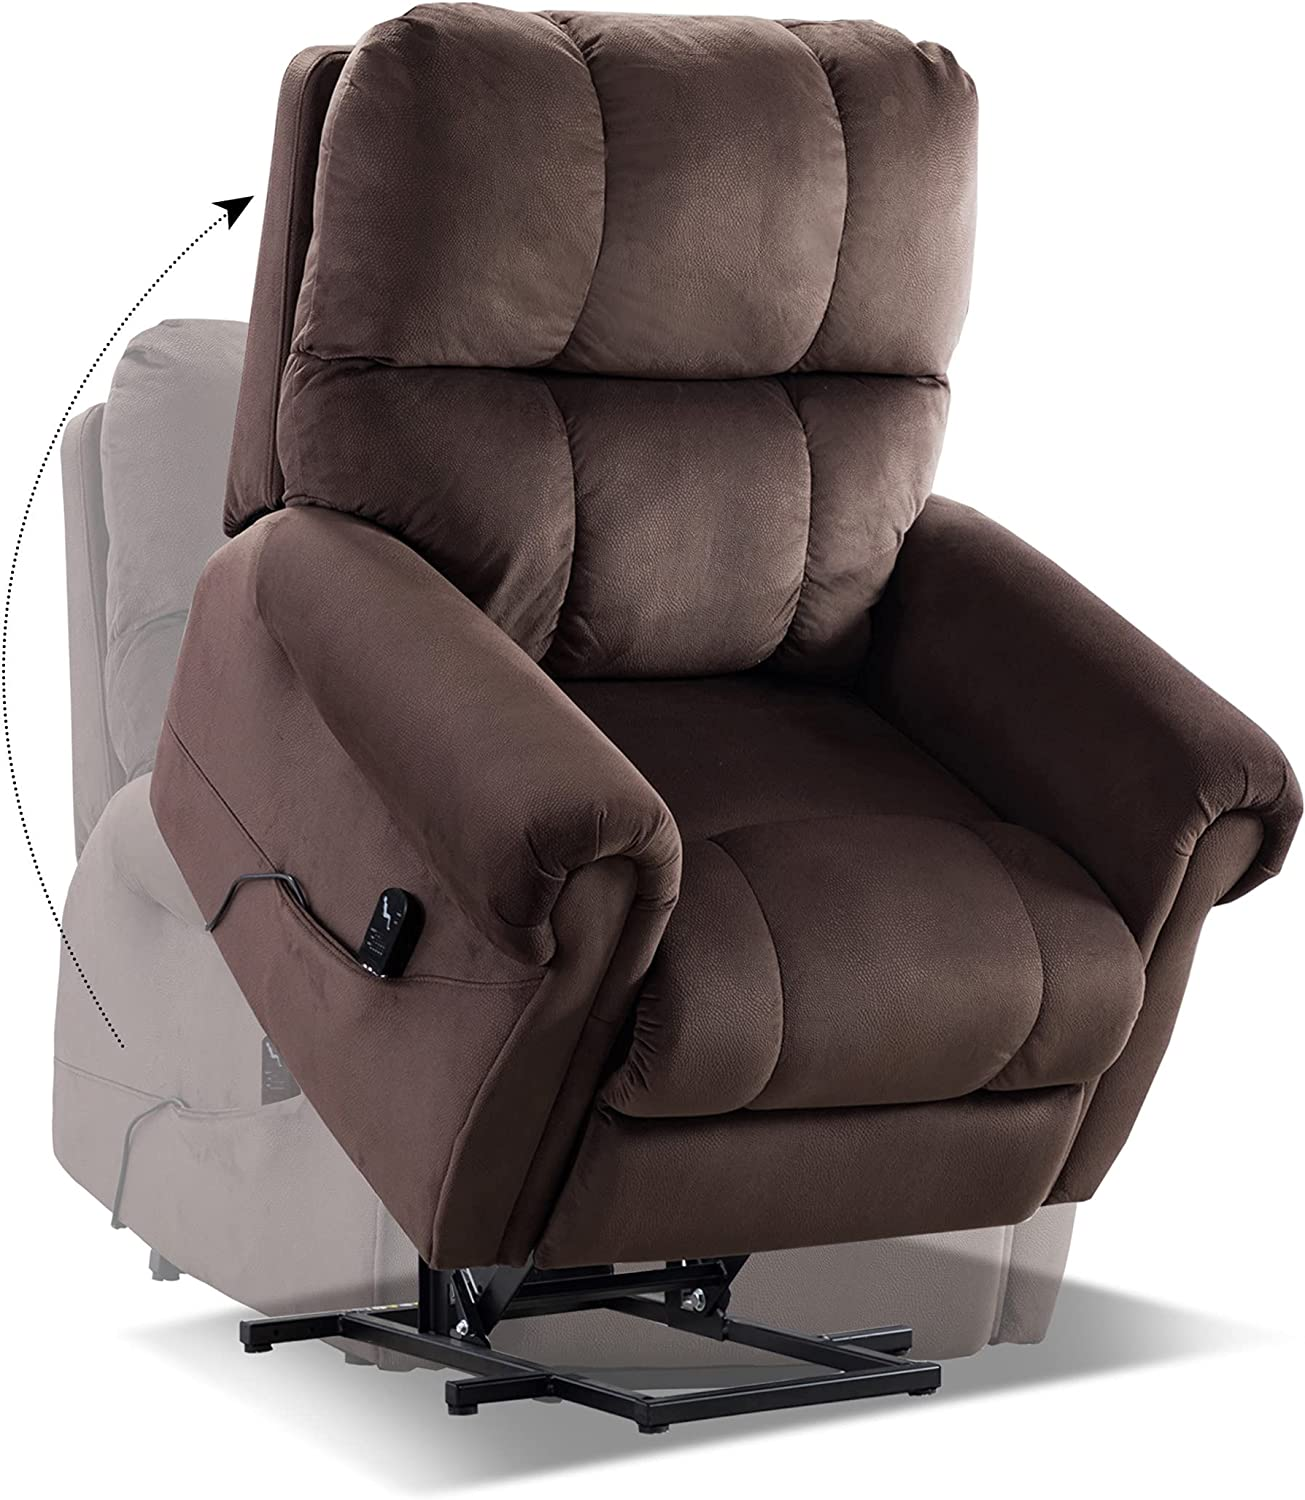 Power Lift Chair Electric Outlet SALE Recliner Fa for Heated Massage Elderly Don't miss the campaign